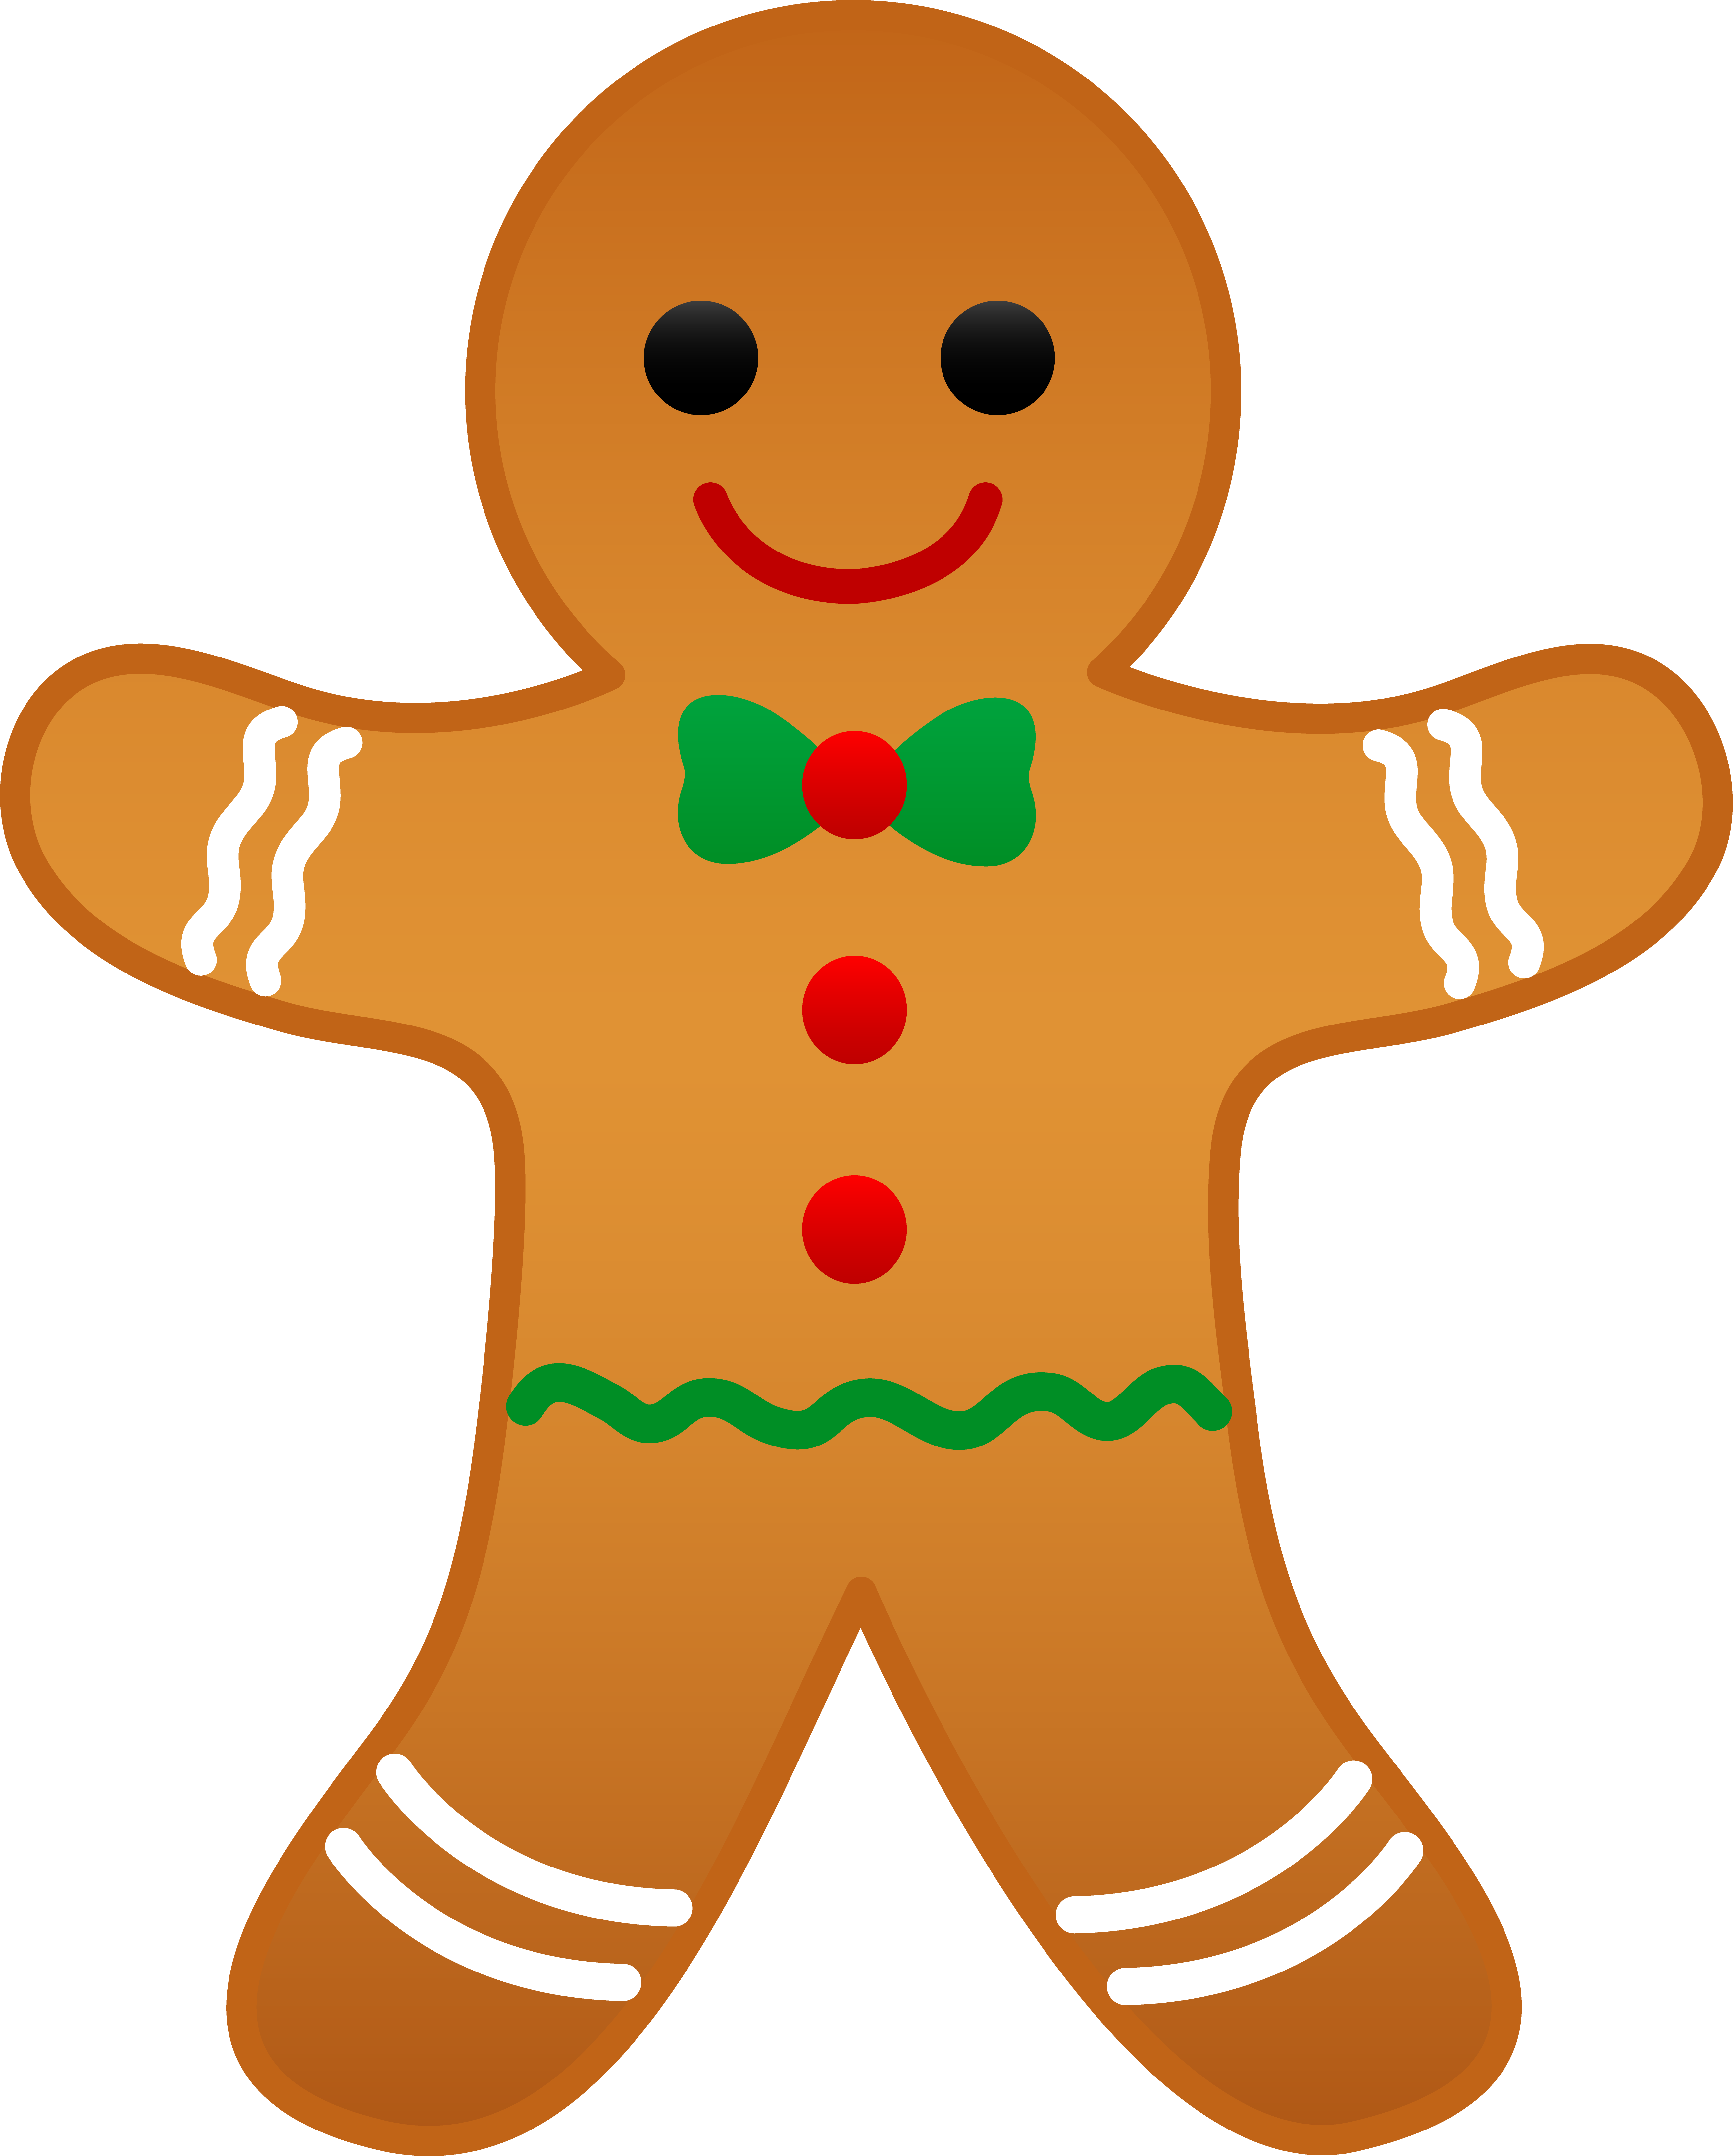 Clipart at getdrawings com. Kd drawing gingerbread man picture library library